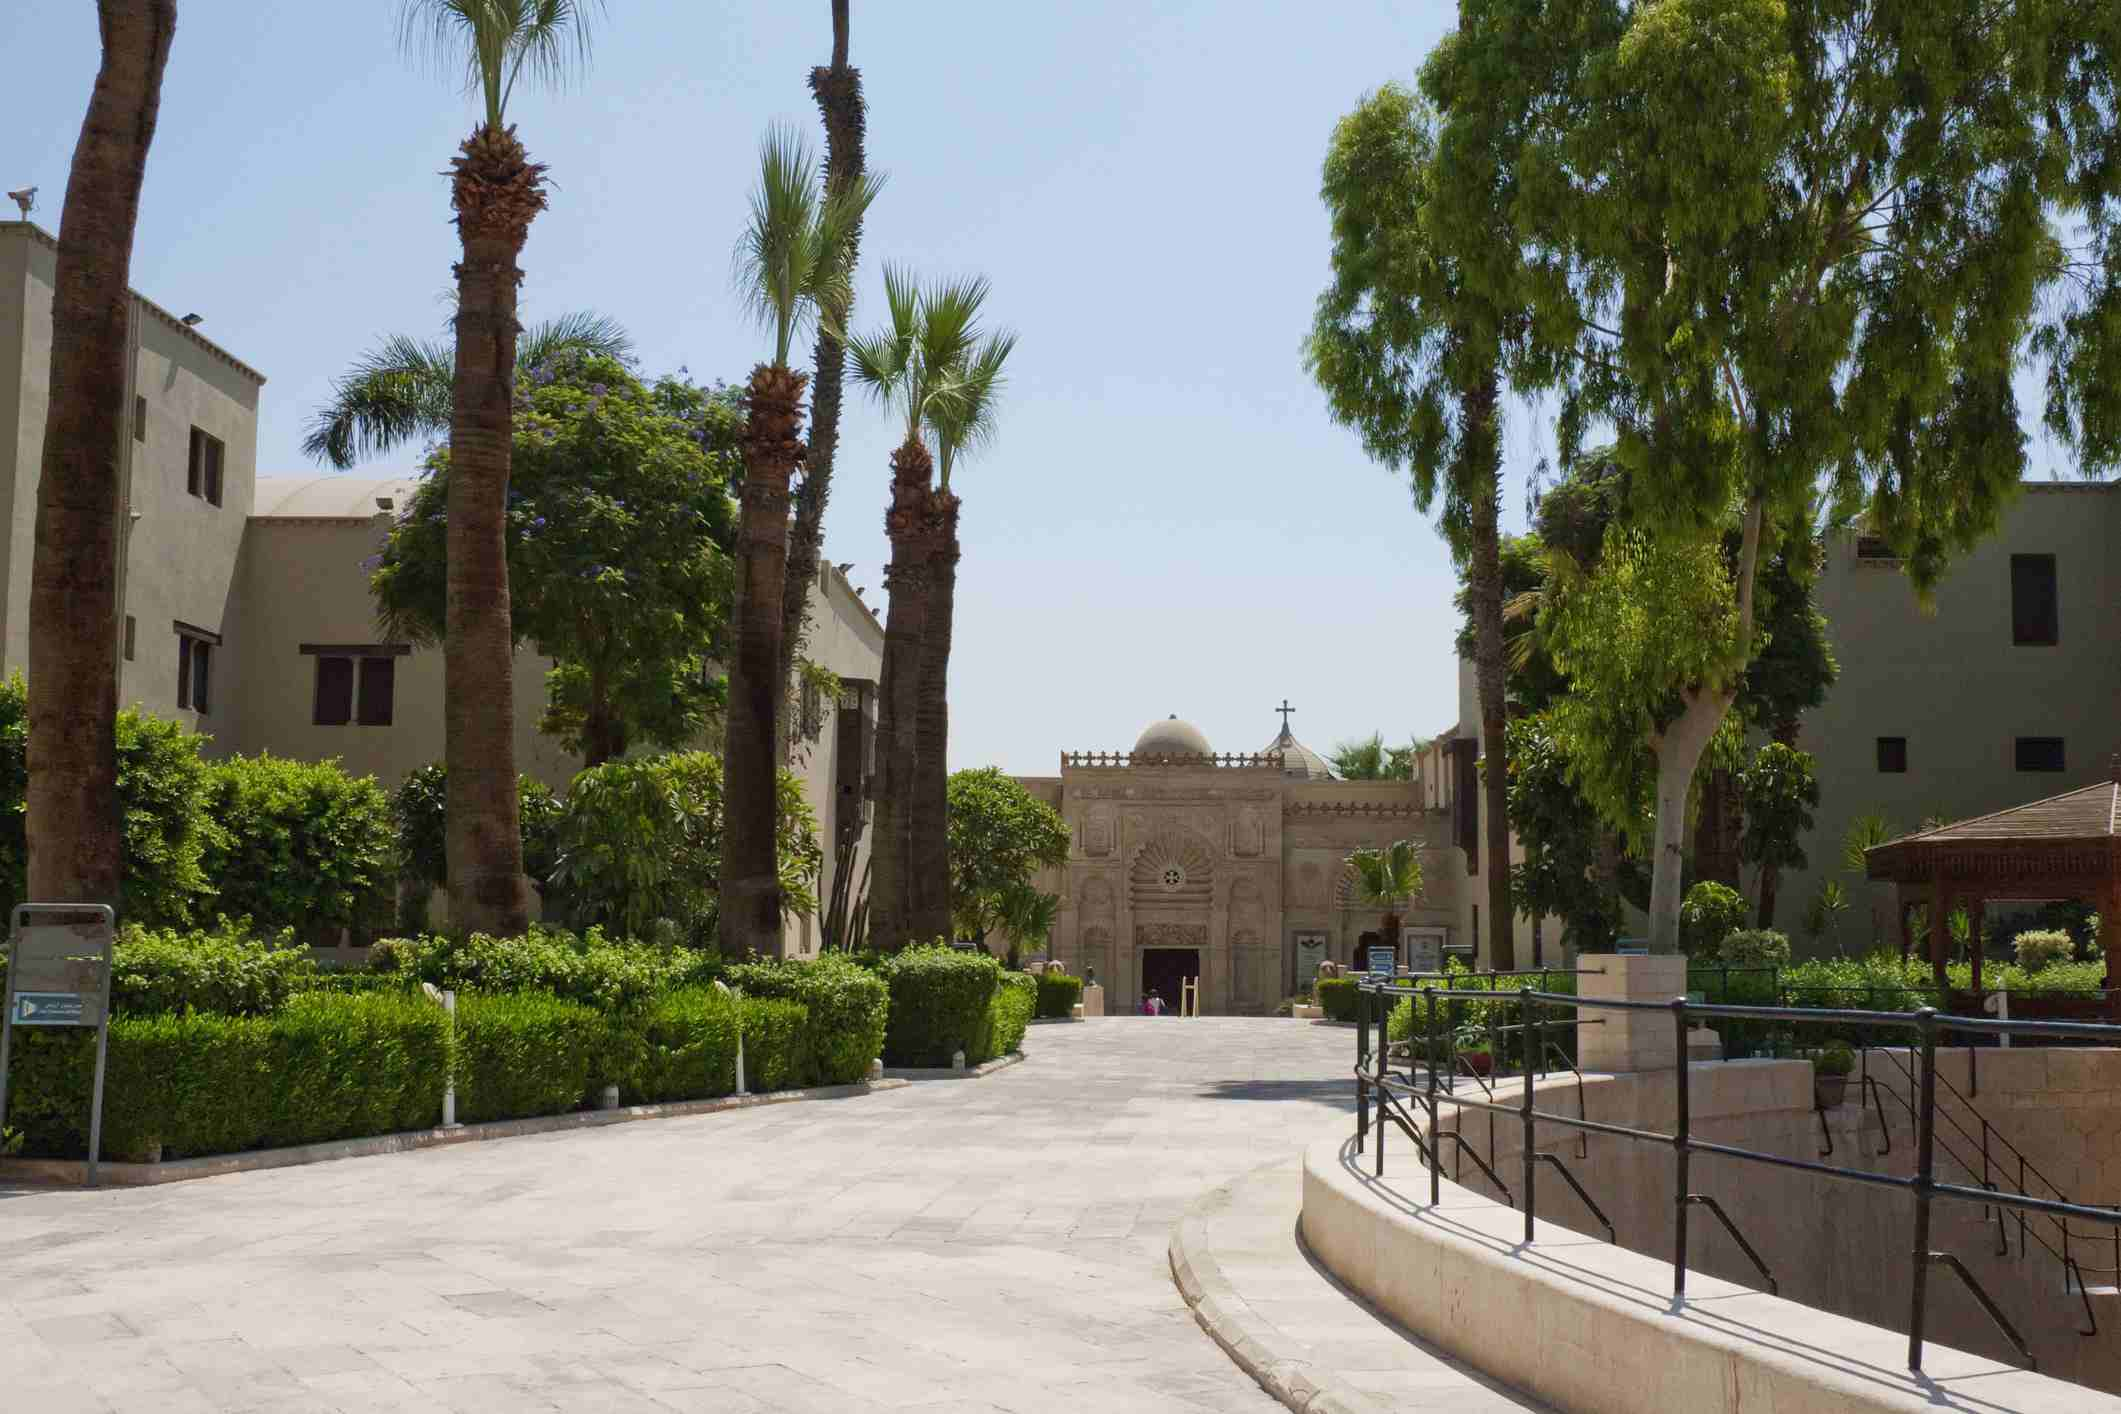 The Coptic Museum in Cairo, Egypt